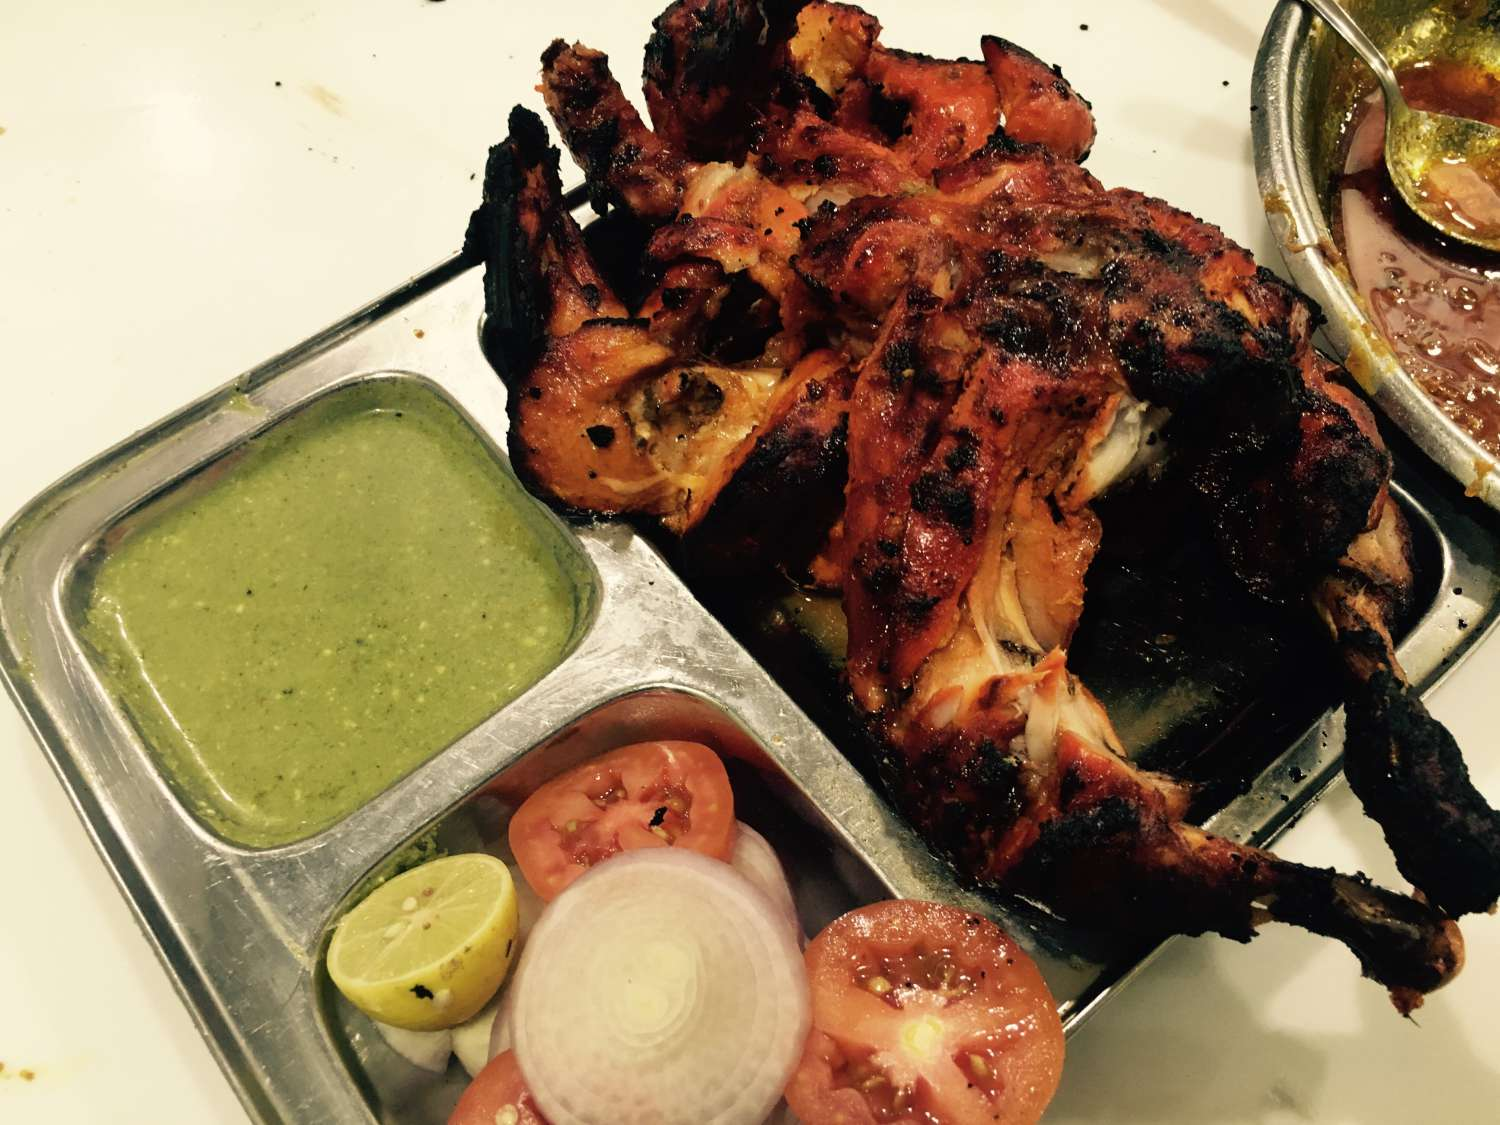 Food Tour in Jaipur - Full Tandoori Chicken